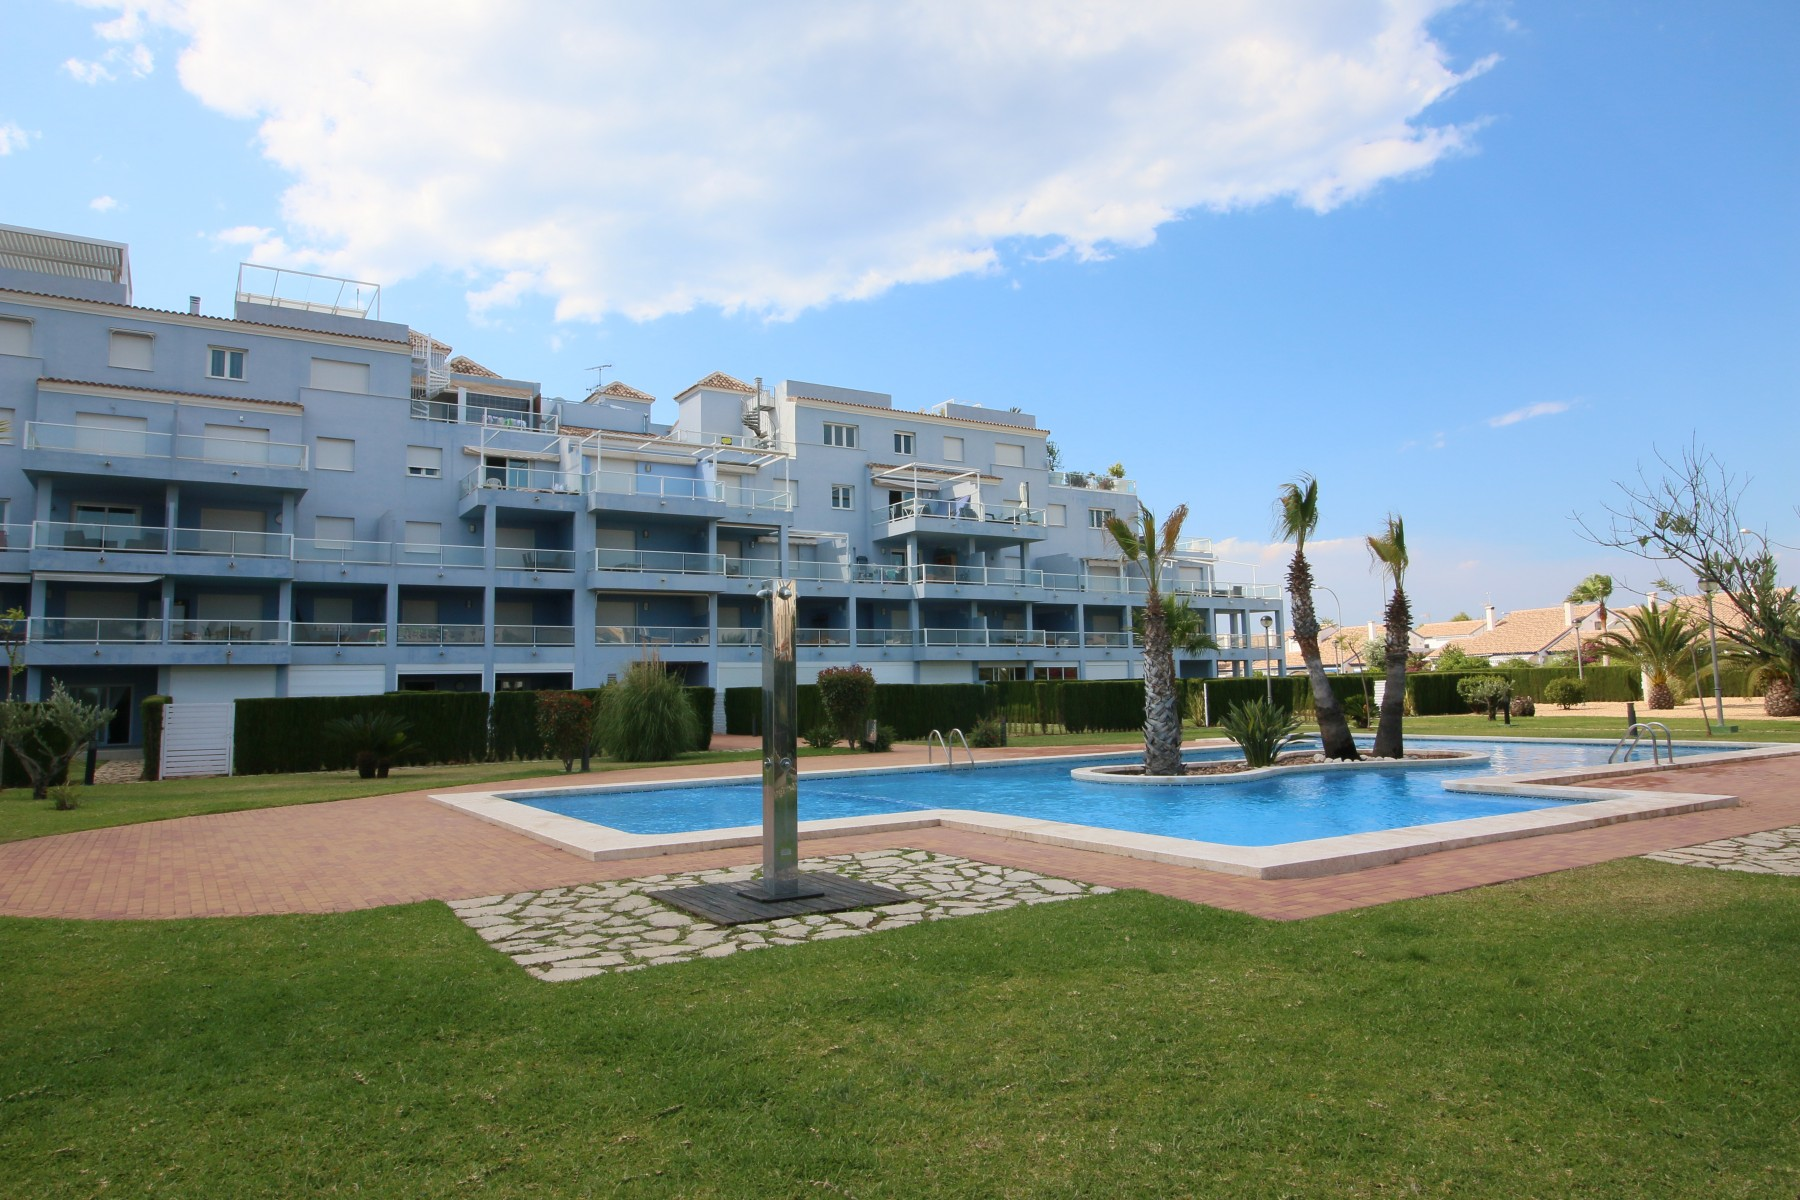 Villa Apartment Zafiro Real,Denia,Costa Blanca #1